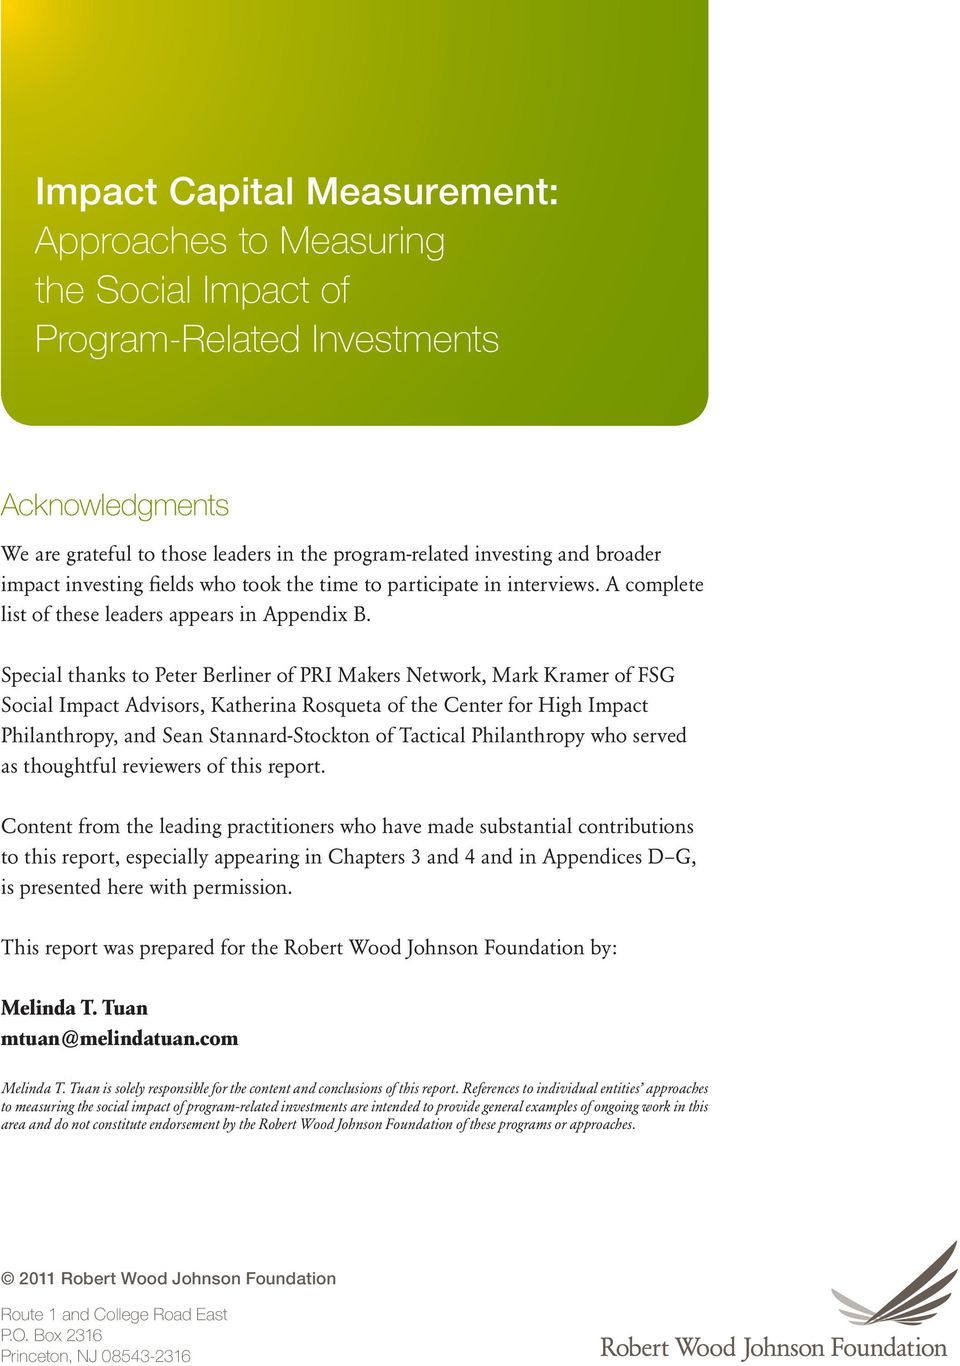 Impact Capital Measurement  Approaches to Measuring the